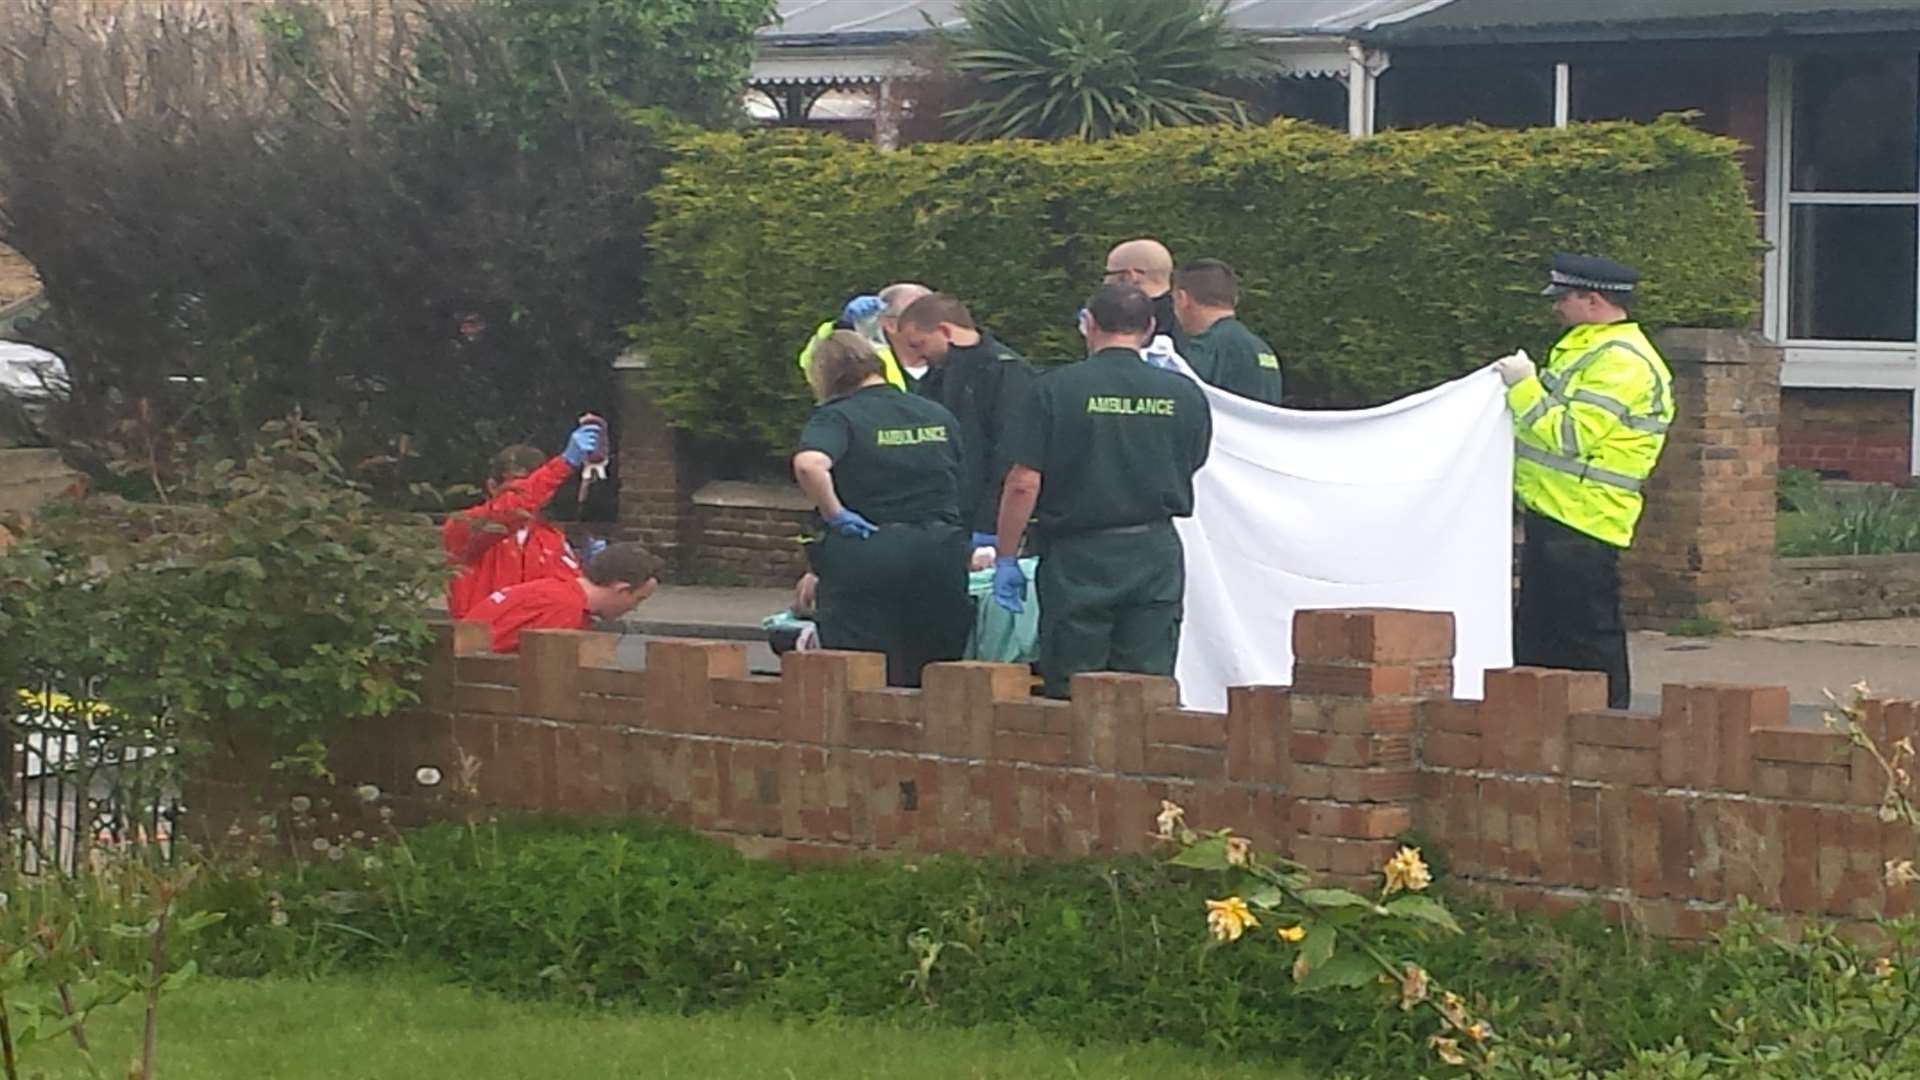 Paramedics treat the injured man behind a screen